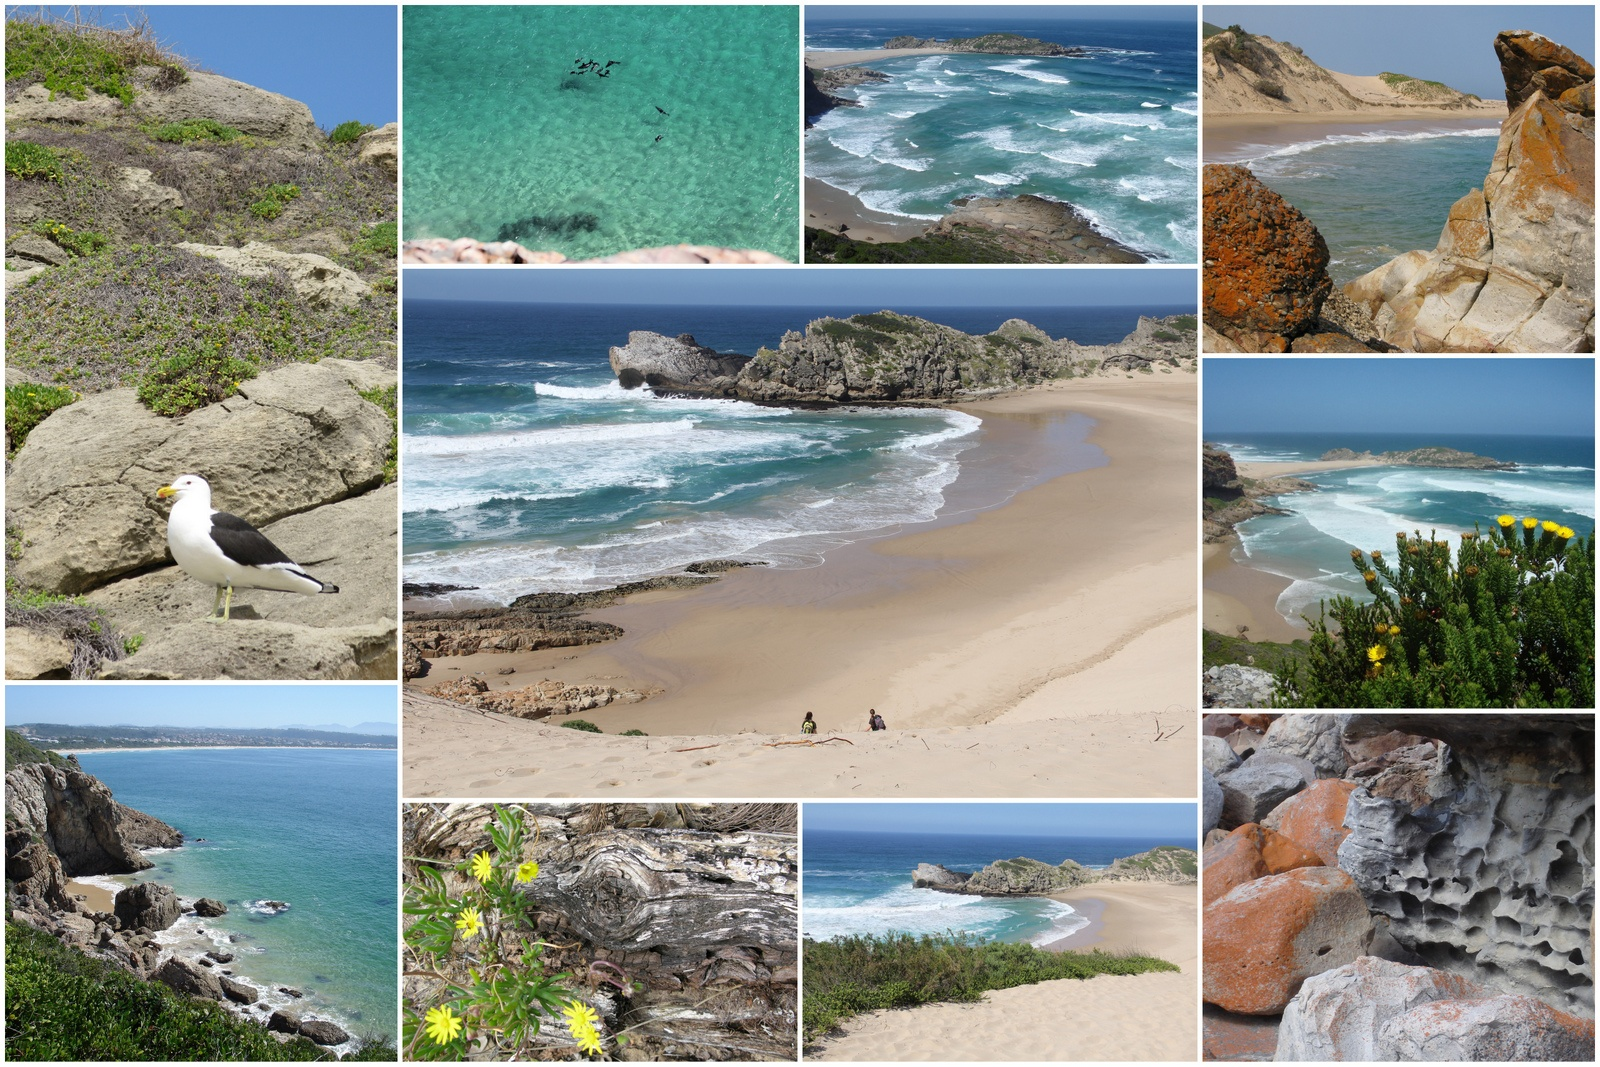 Hiking the Robberg